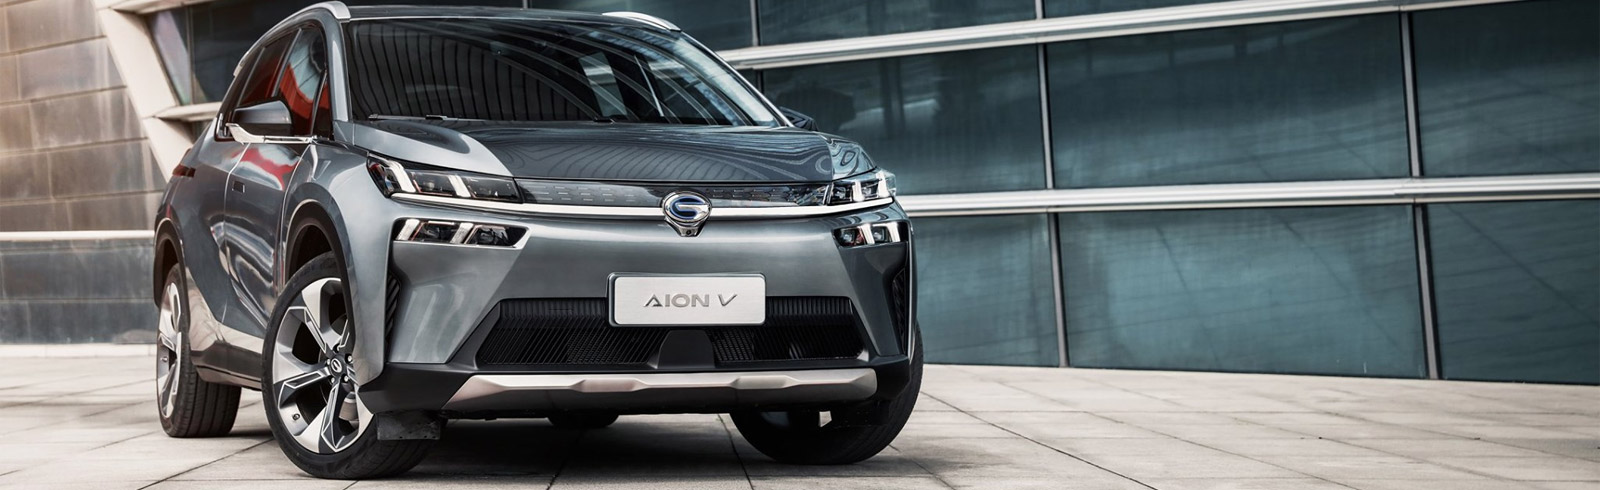 GAC Aion V equipped with new battery will enter production in September 2021